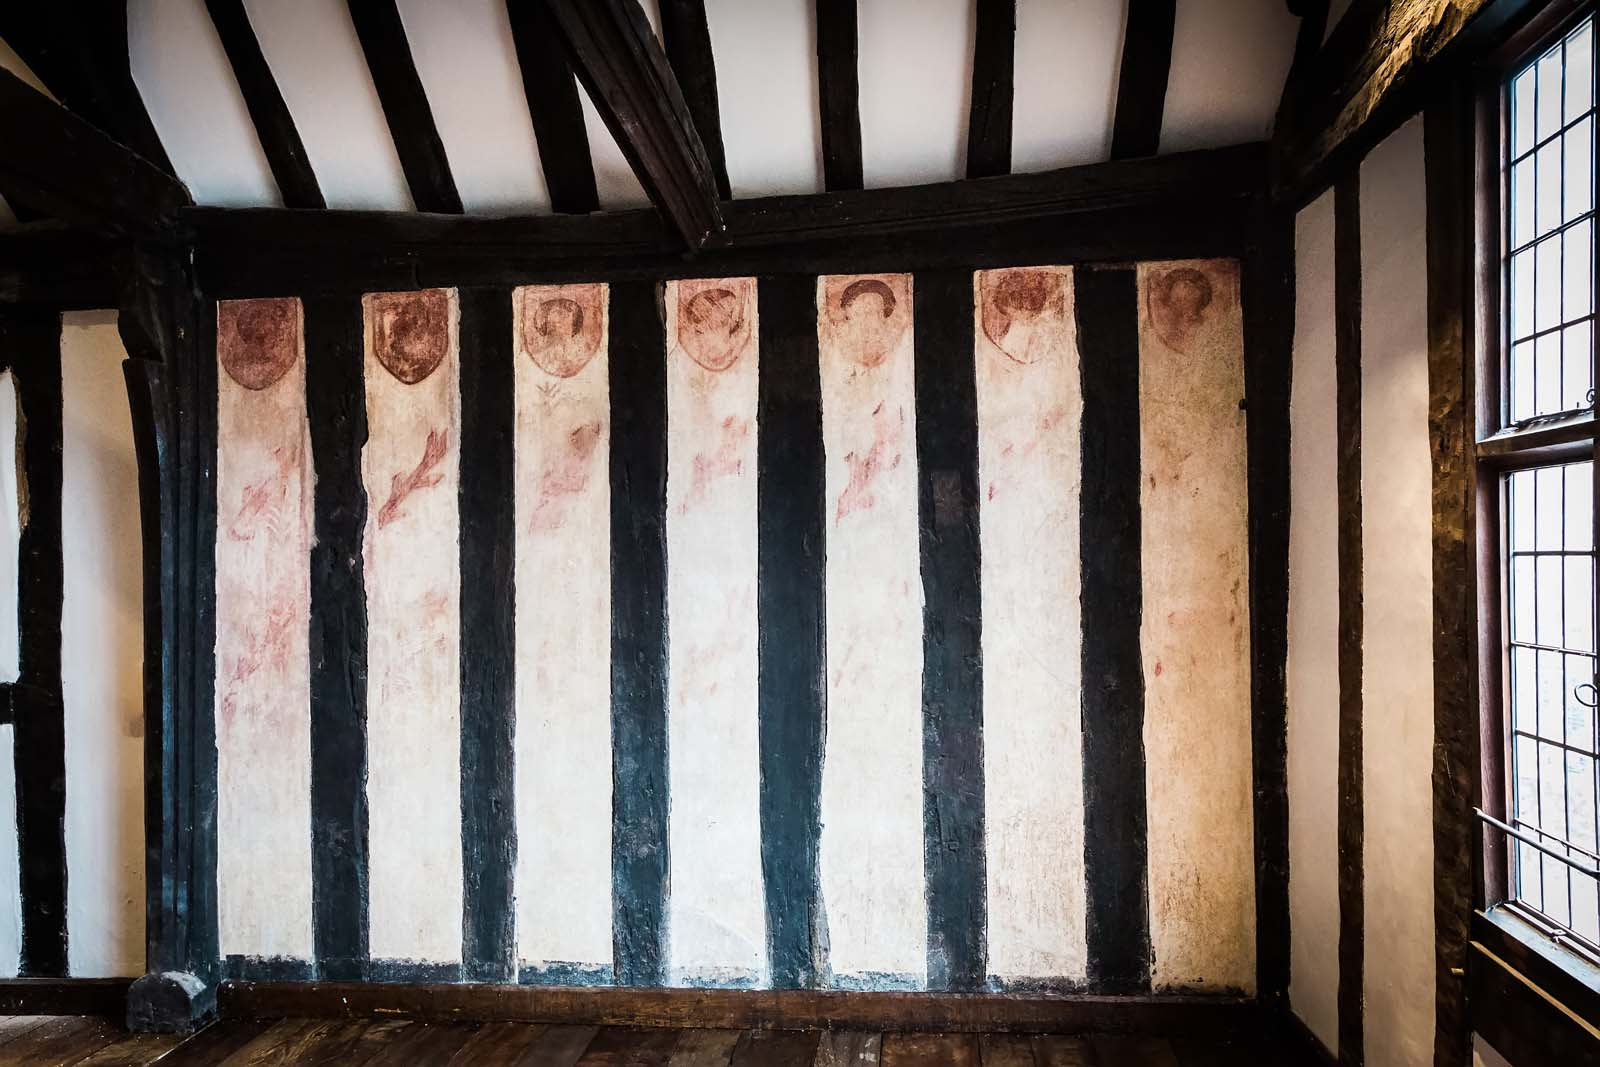 photo of a tudor period wall with beams, limewash and the remanants of portraits and roundels visible